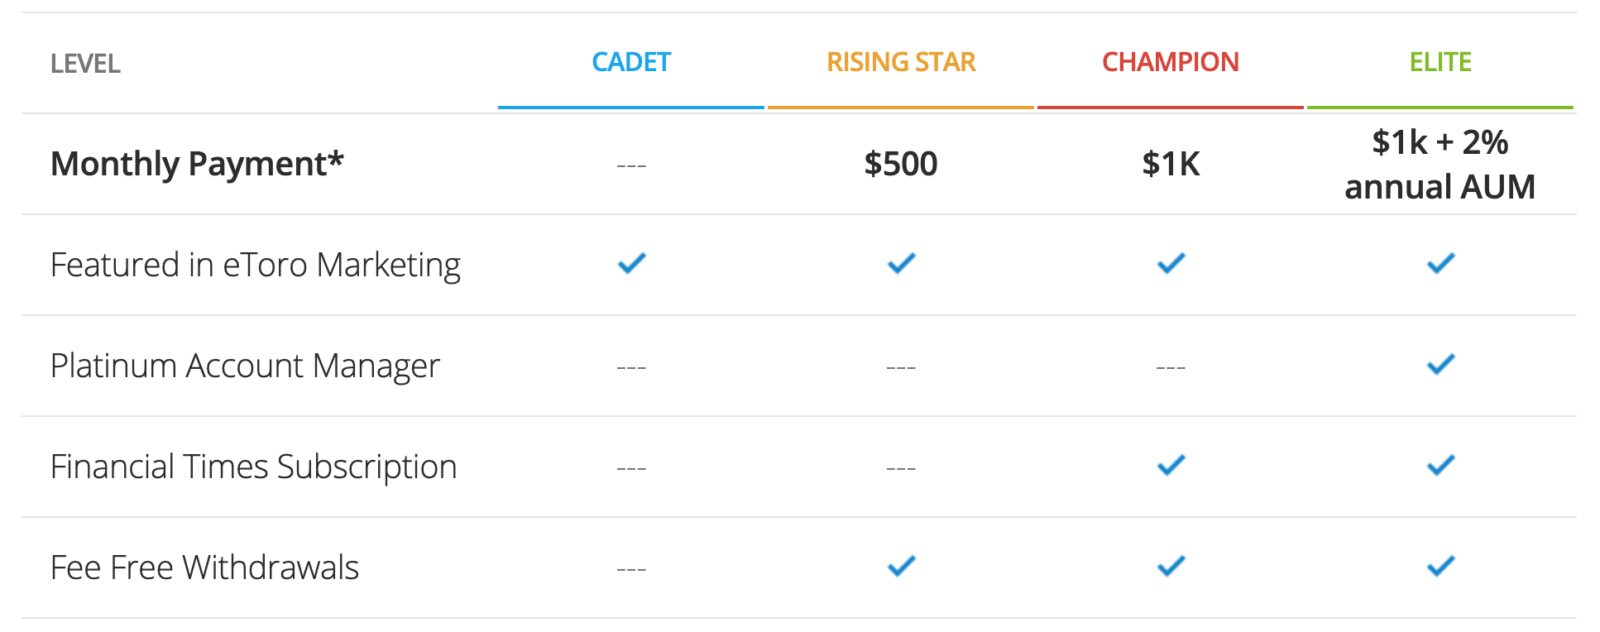 Chart showing the benefits of cadet and other levels of Etoro PI program